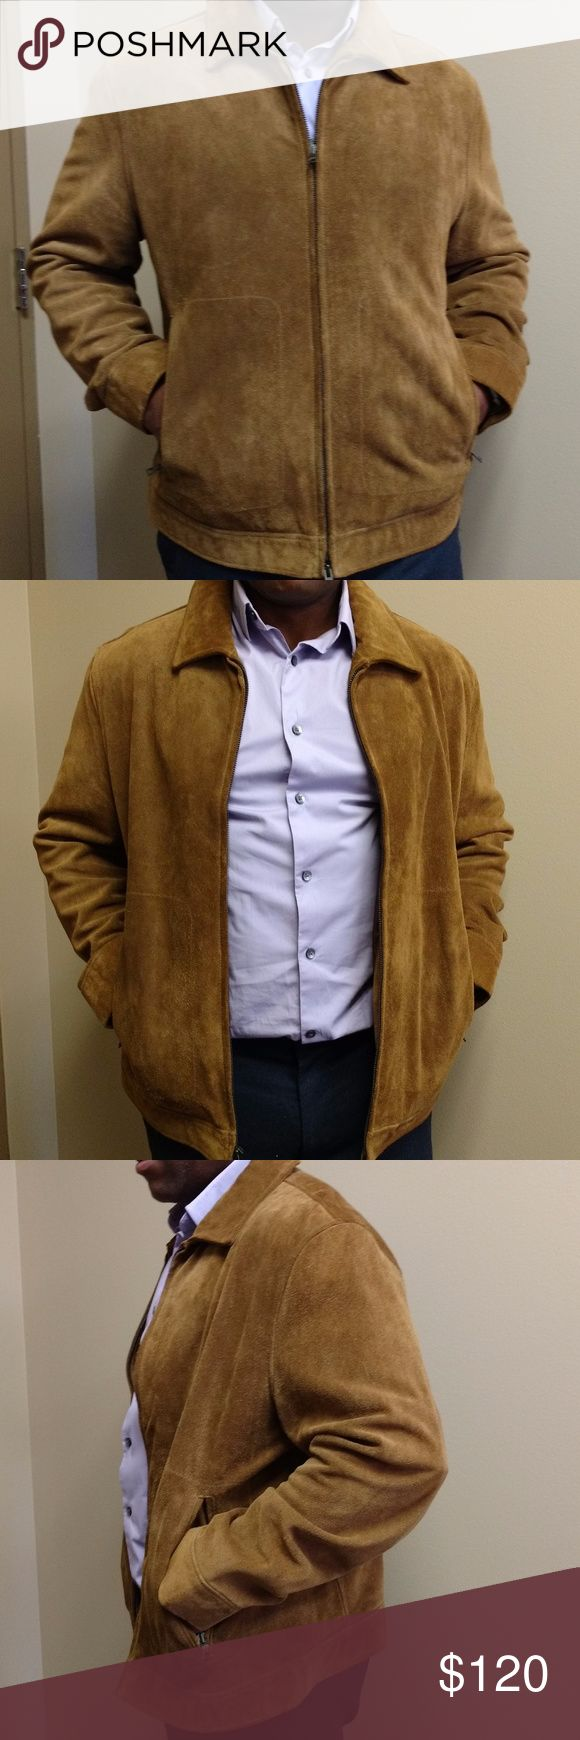 Banana Republic Men's Suede Bomber Jacket Banana Republic Men's Suede Bomber Jacket size large. Good condition, very rarely worn. Two exterior zip pockets, main zipper in great condition.  Waist: 35 inches Chest: 41 inches Sleeve: 35 inches Made in China Banana Republic Jackets & Coats Bomber & Varsity